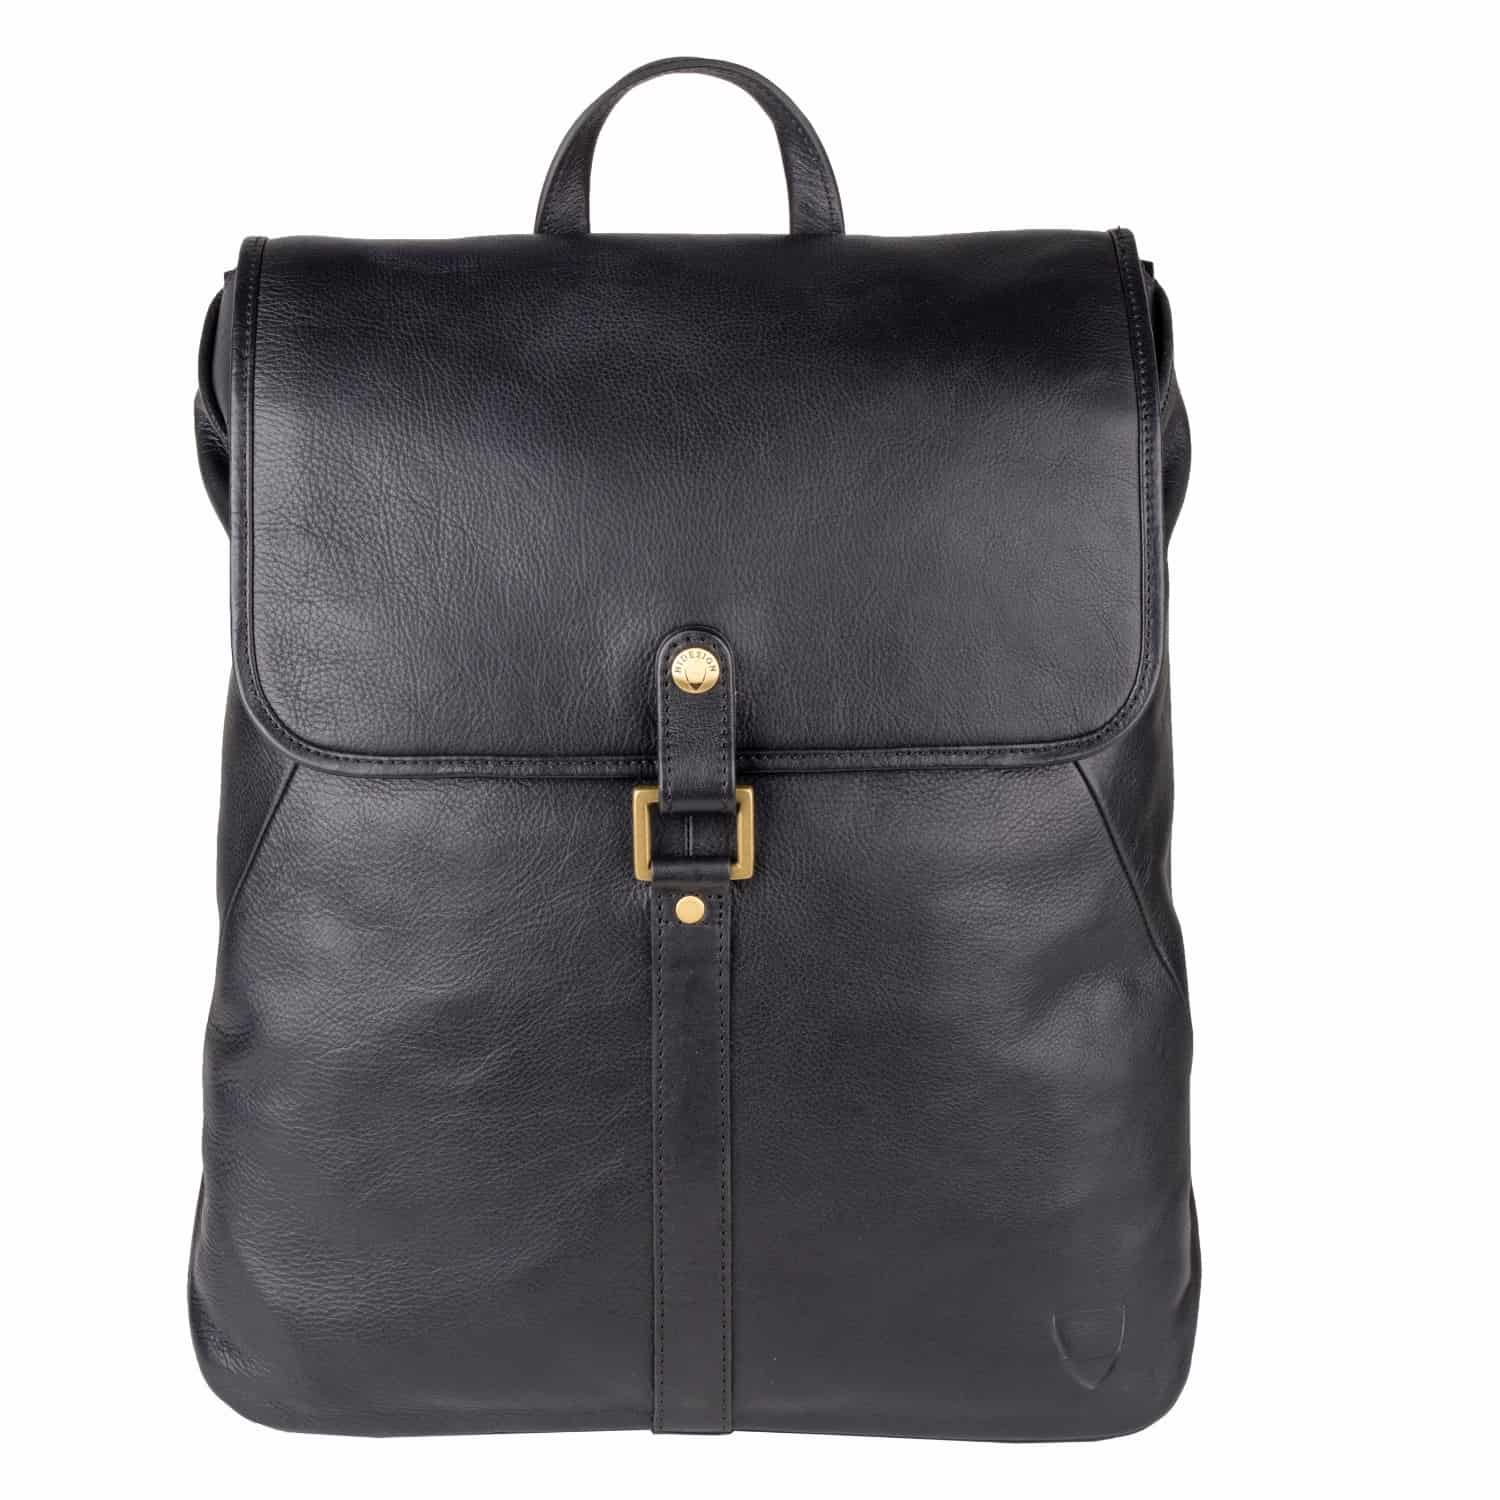 Stylish Brosnan soft classical black leather backpack, for men.